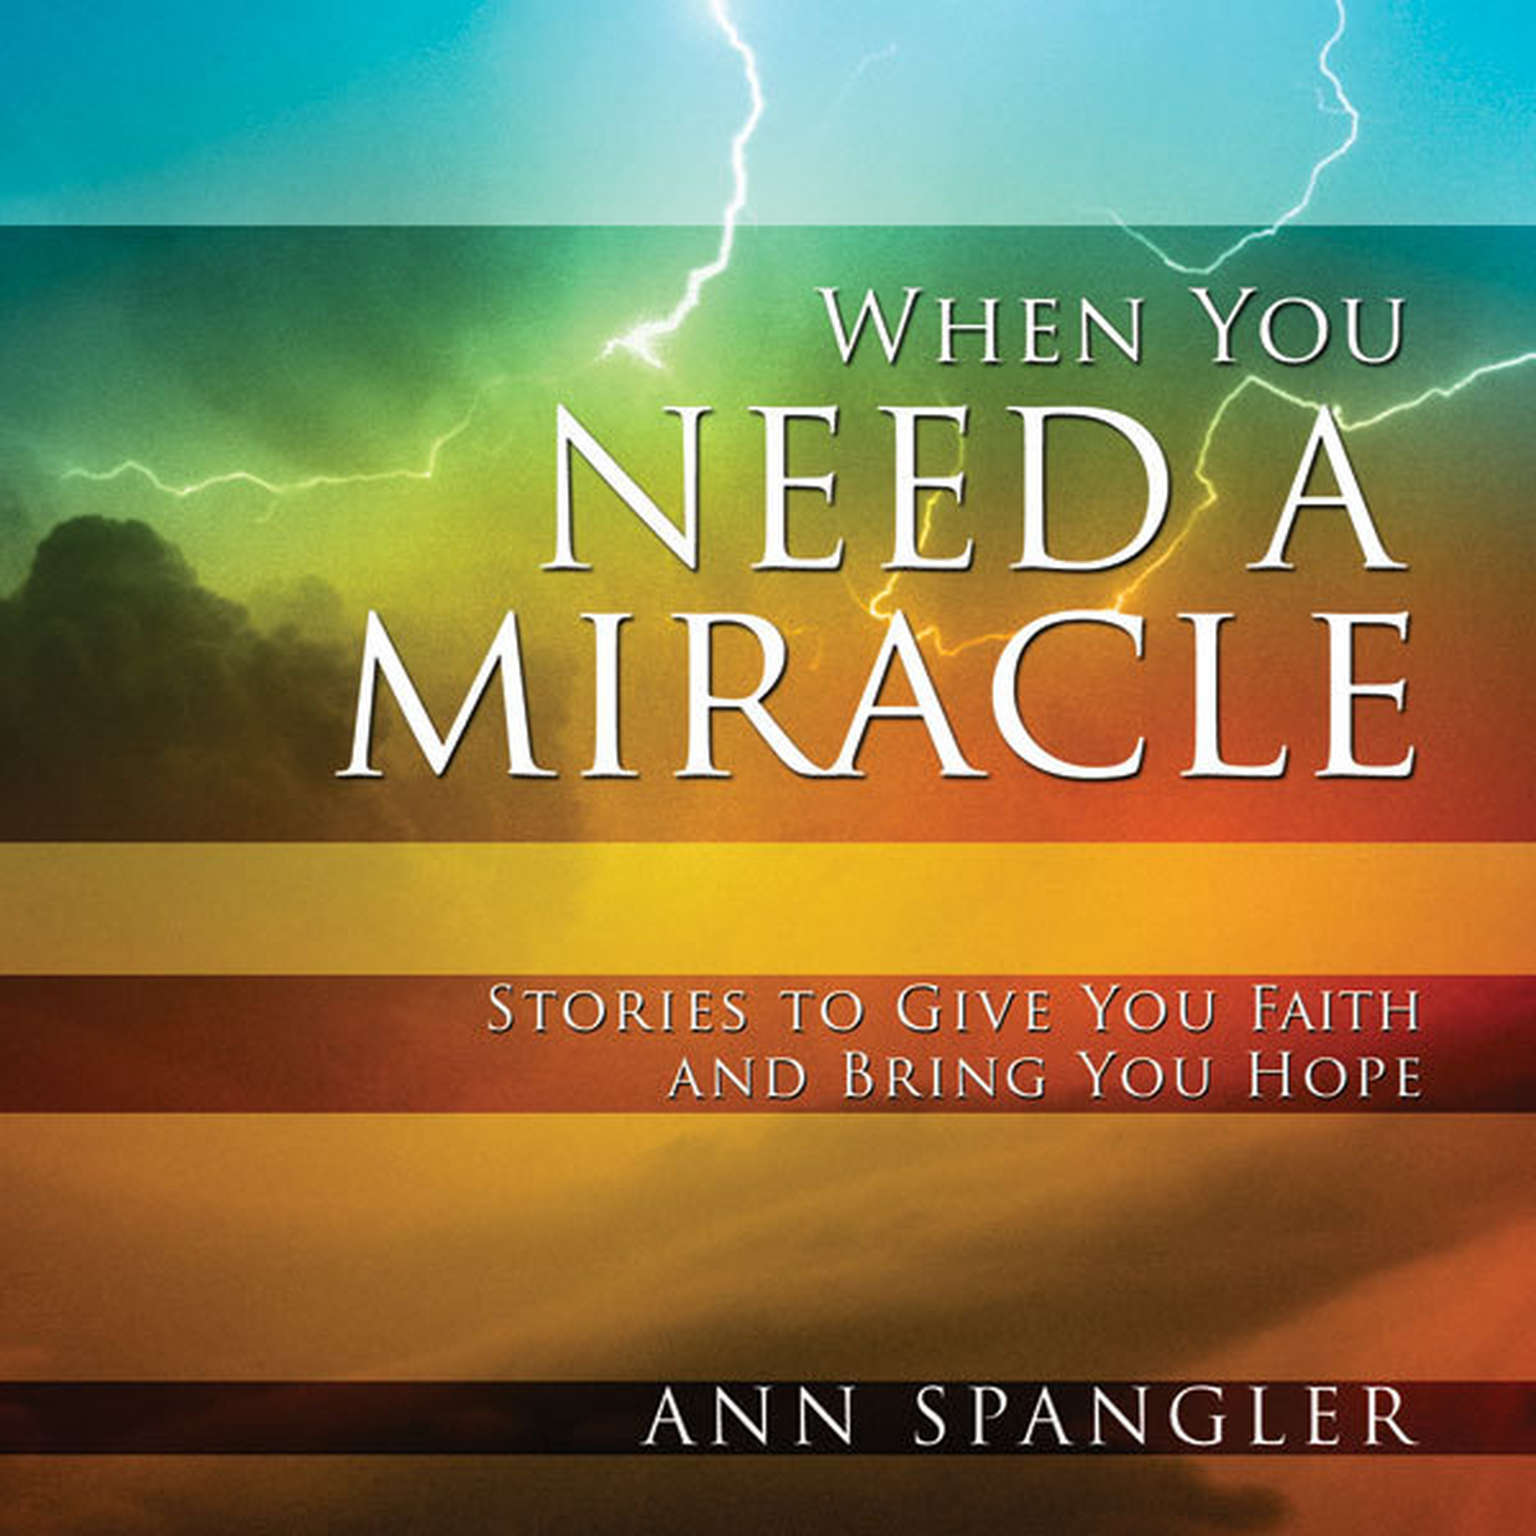 Printable When You Need a Miracle: Daily Readings Audiobook Cover Art